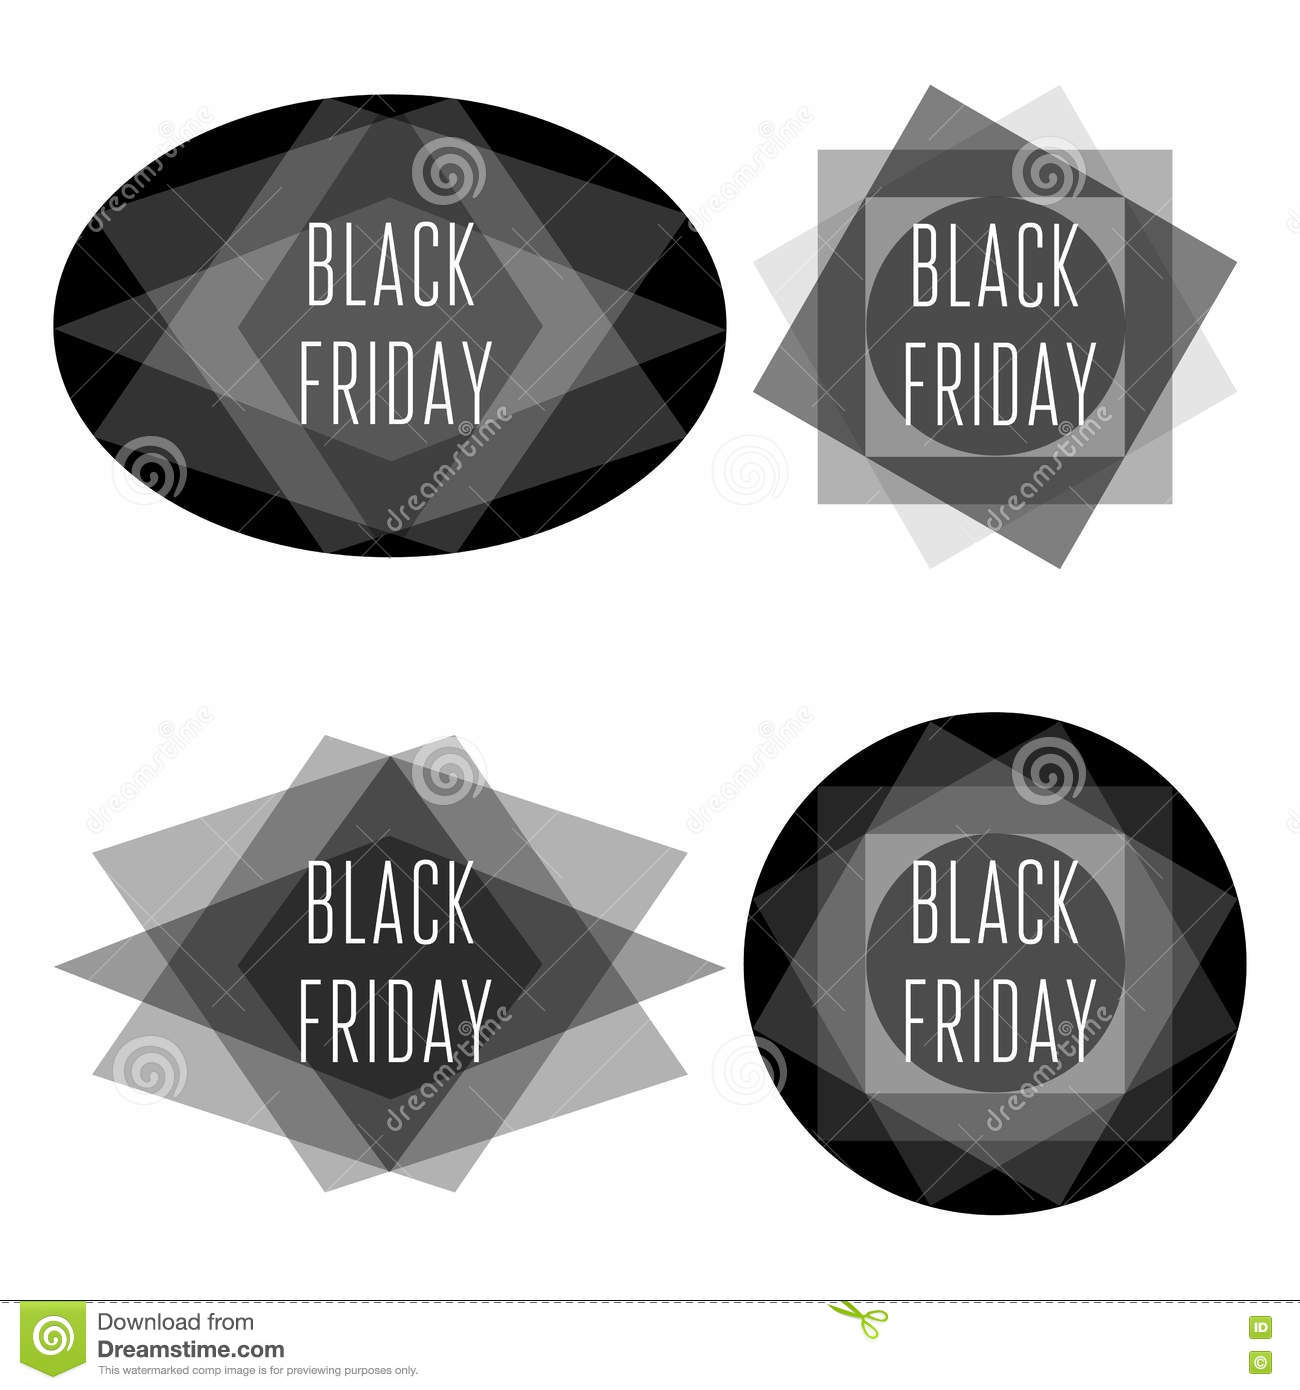 black-friday-title-collection-sign-isolated-white-background-vector-illustration-79325024.jpg